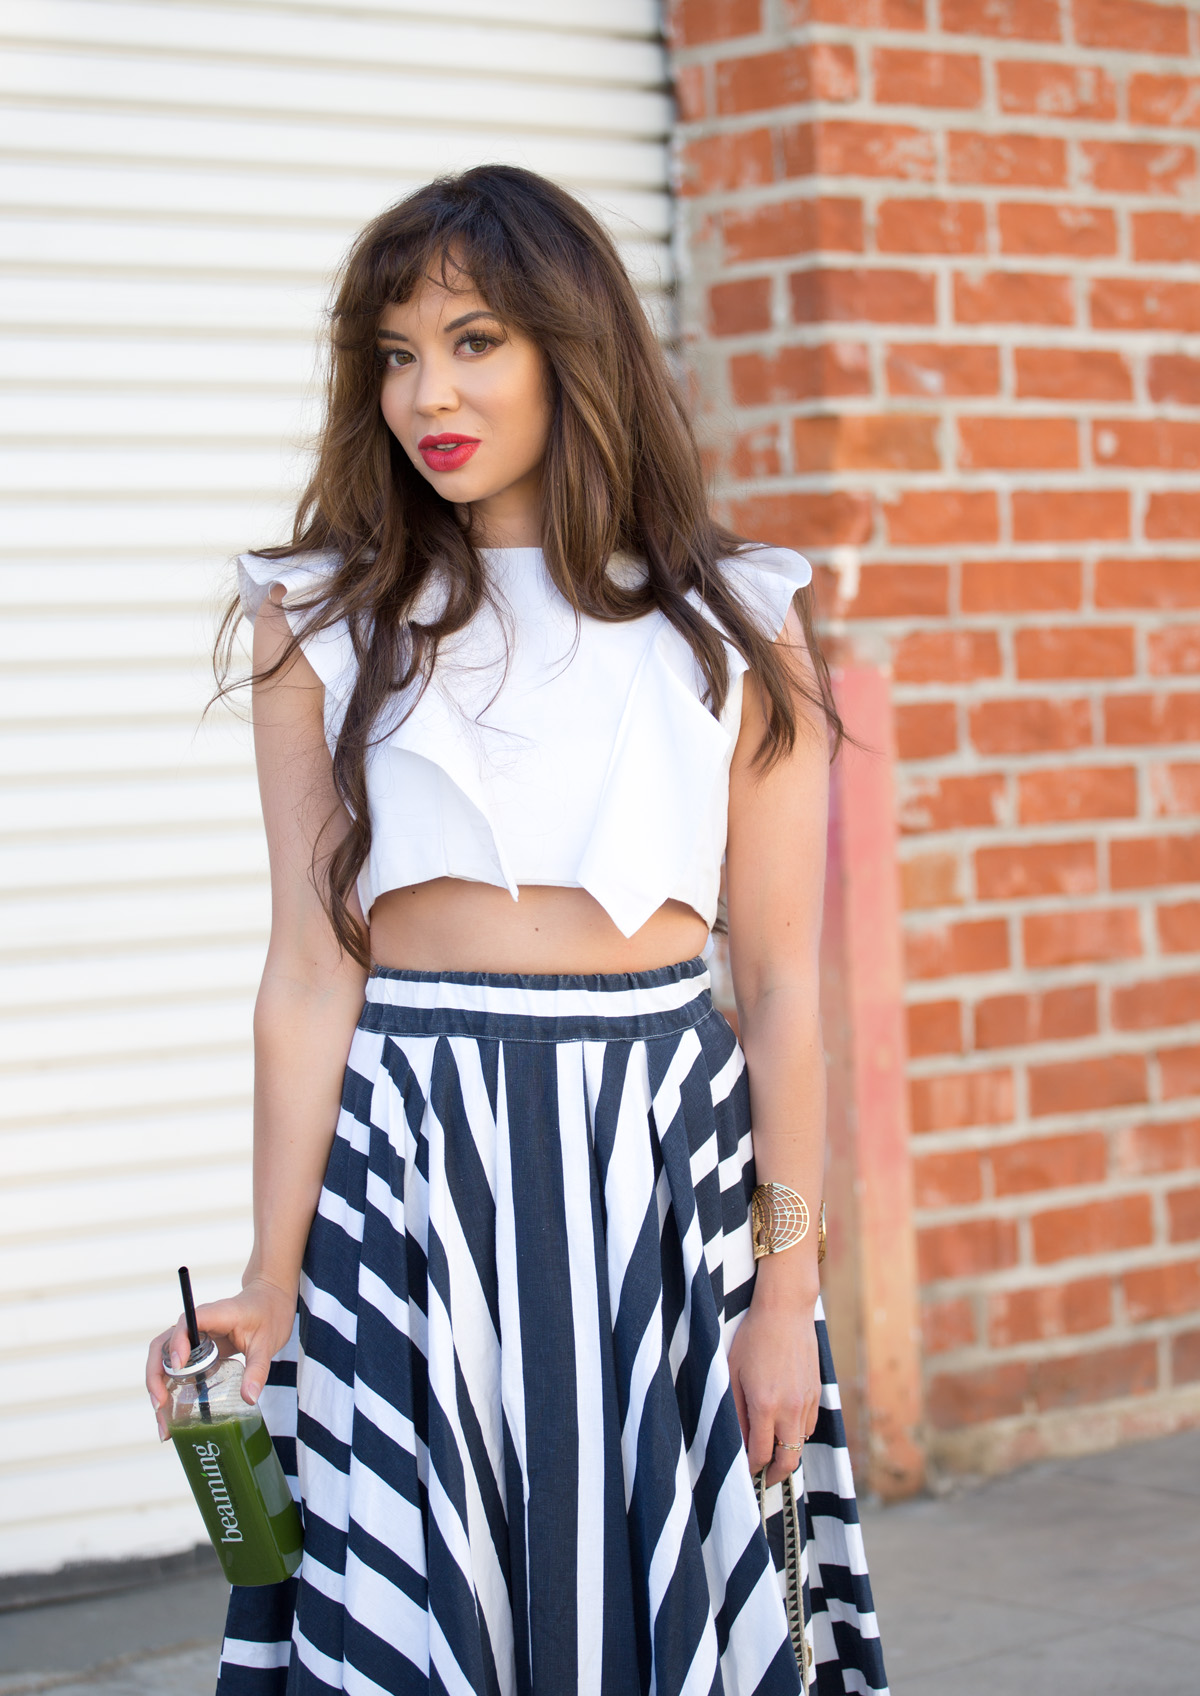 AS9A3279_tighter_crop_LR - Beaming From the Inside Out by popular LA style blogger The LA Survival Guide